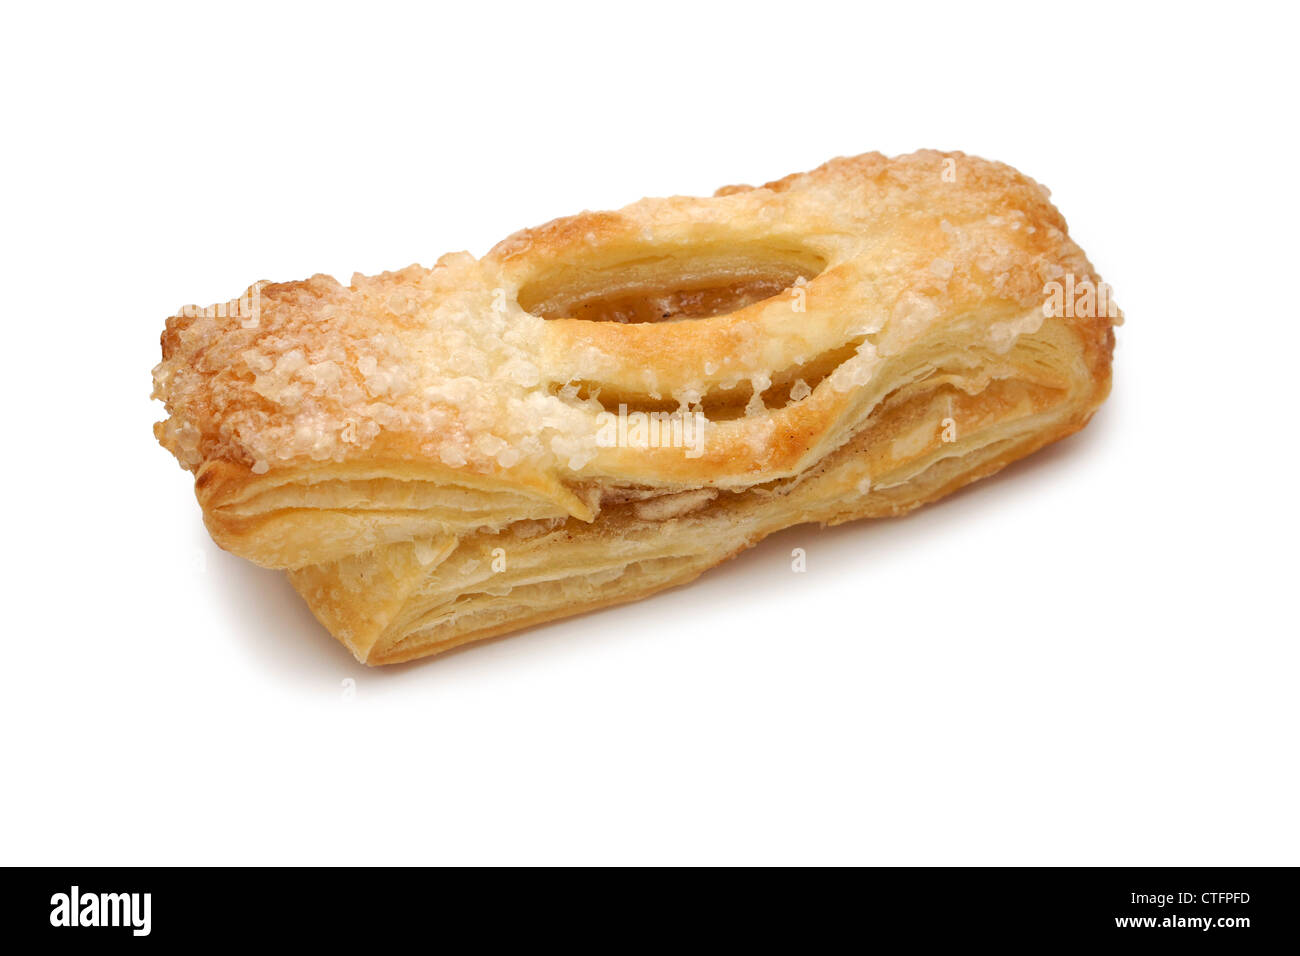 Strudel Flaky Apple Pastry - Stock Image